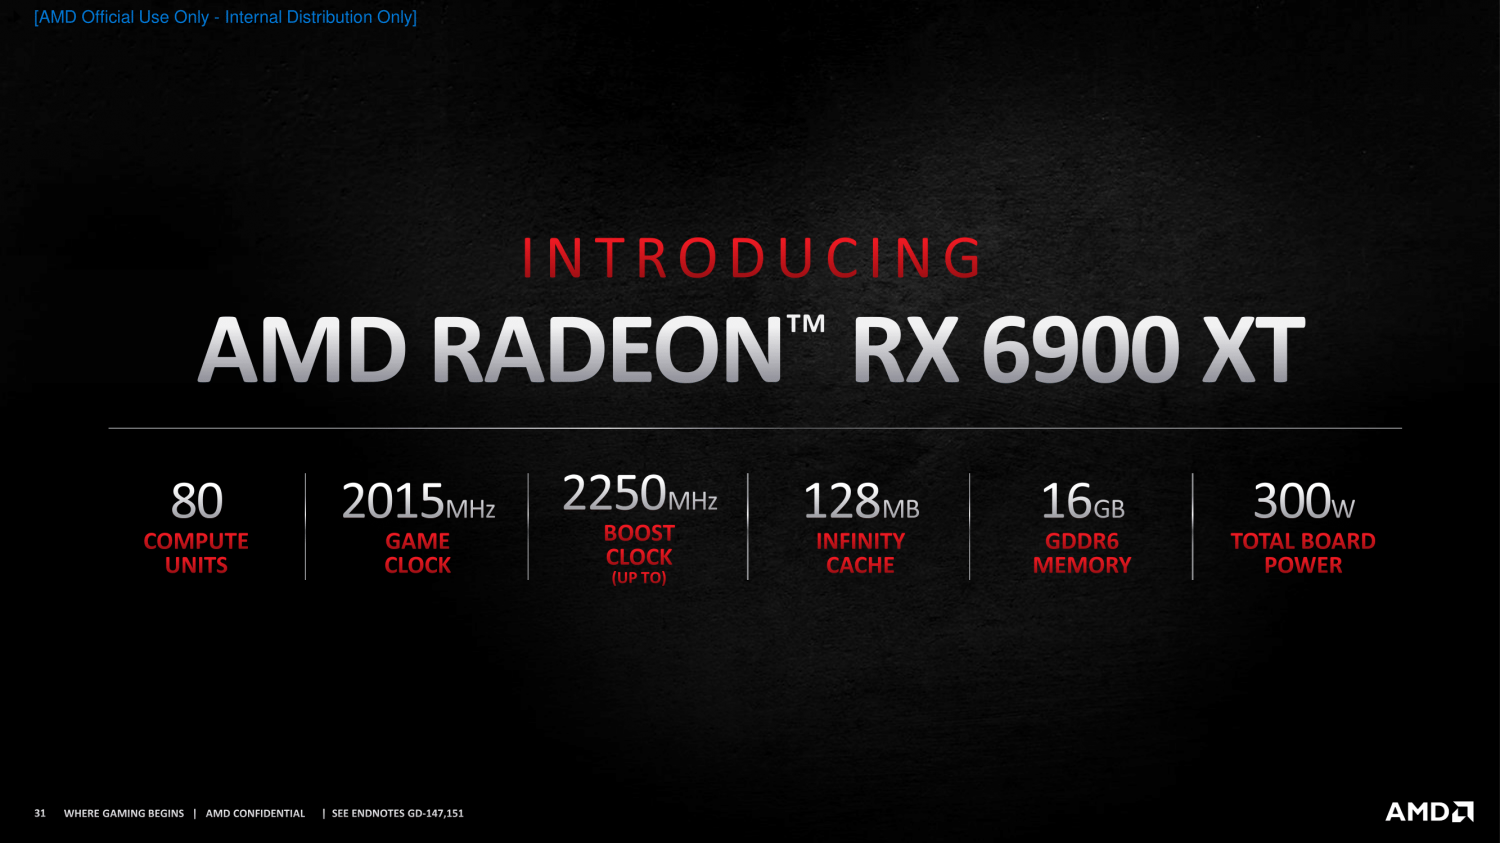 AMD's new Radeon RX 6900 XT announced, competes with RTX 3090 for $999 | TweakTown